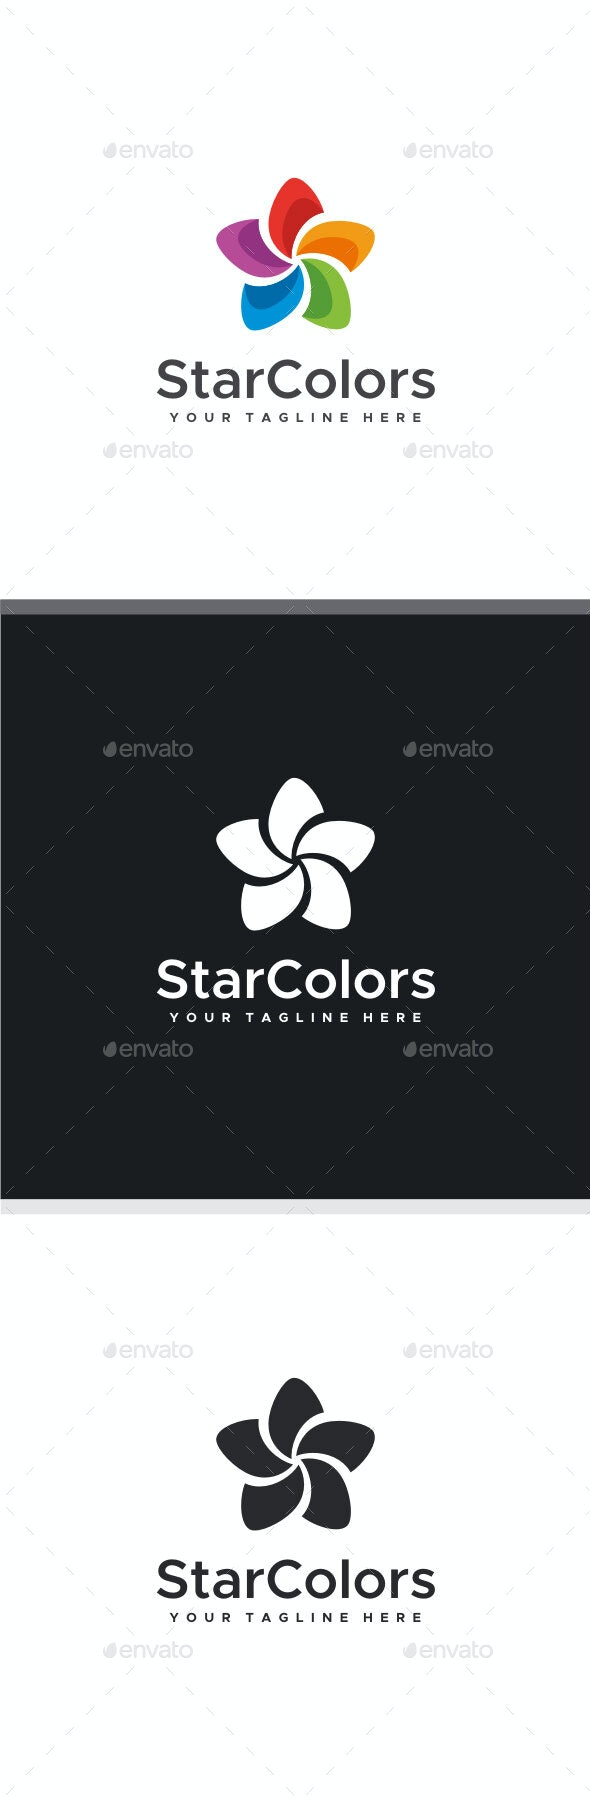 Star Colors Logo - Vector Abstract